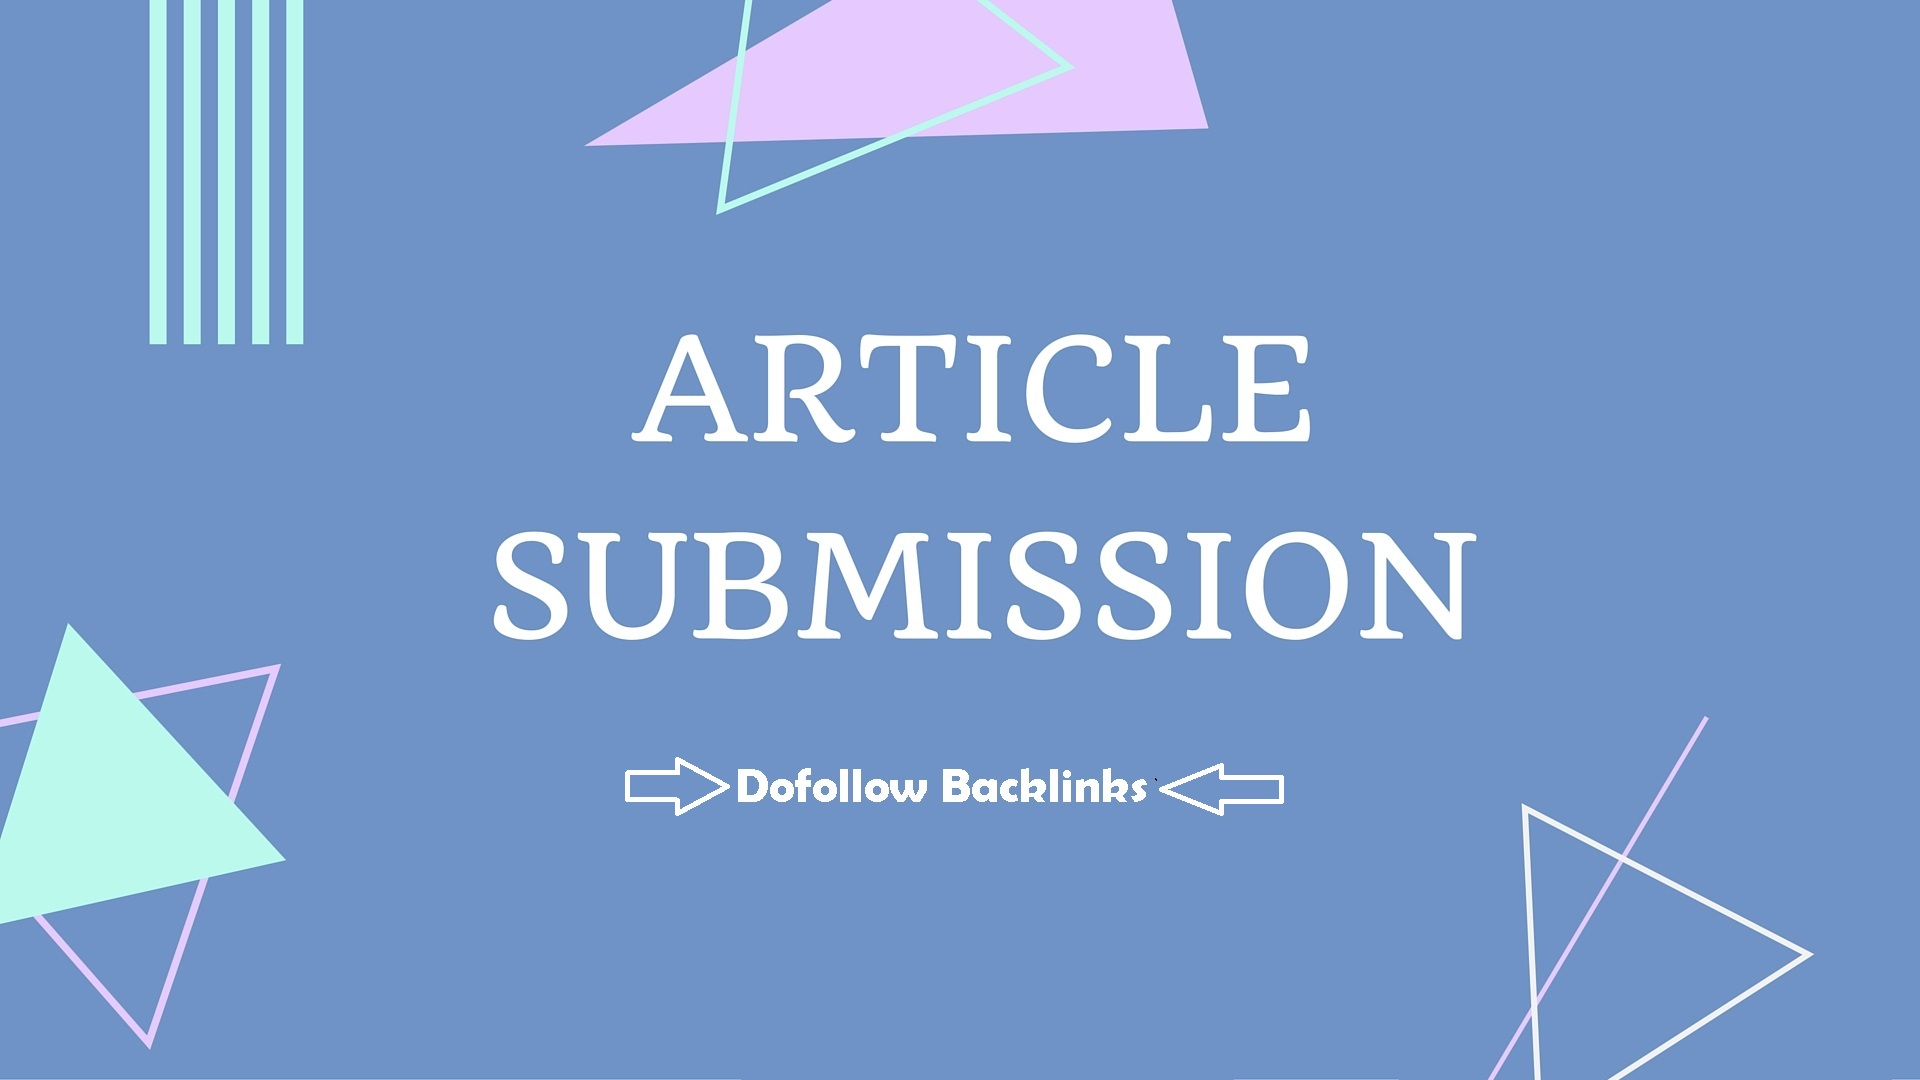 i will create 20 article submission